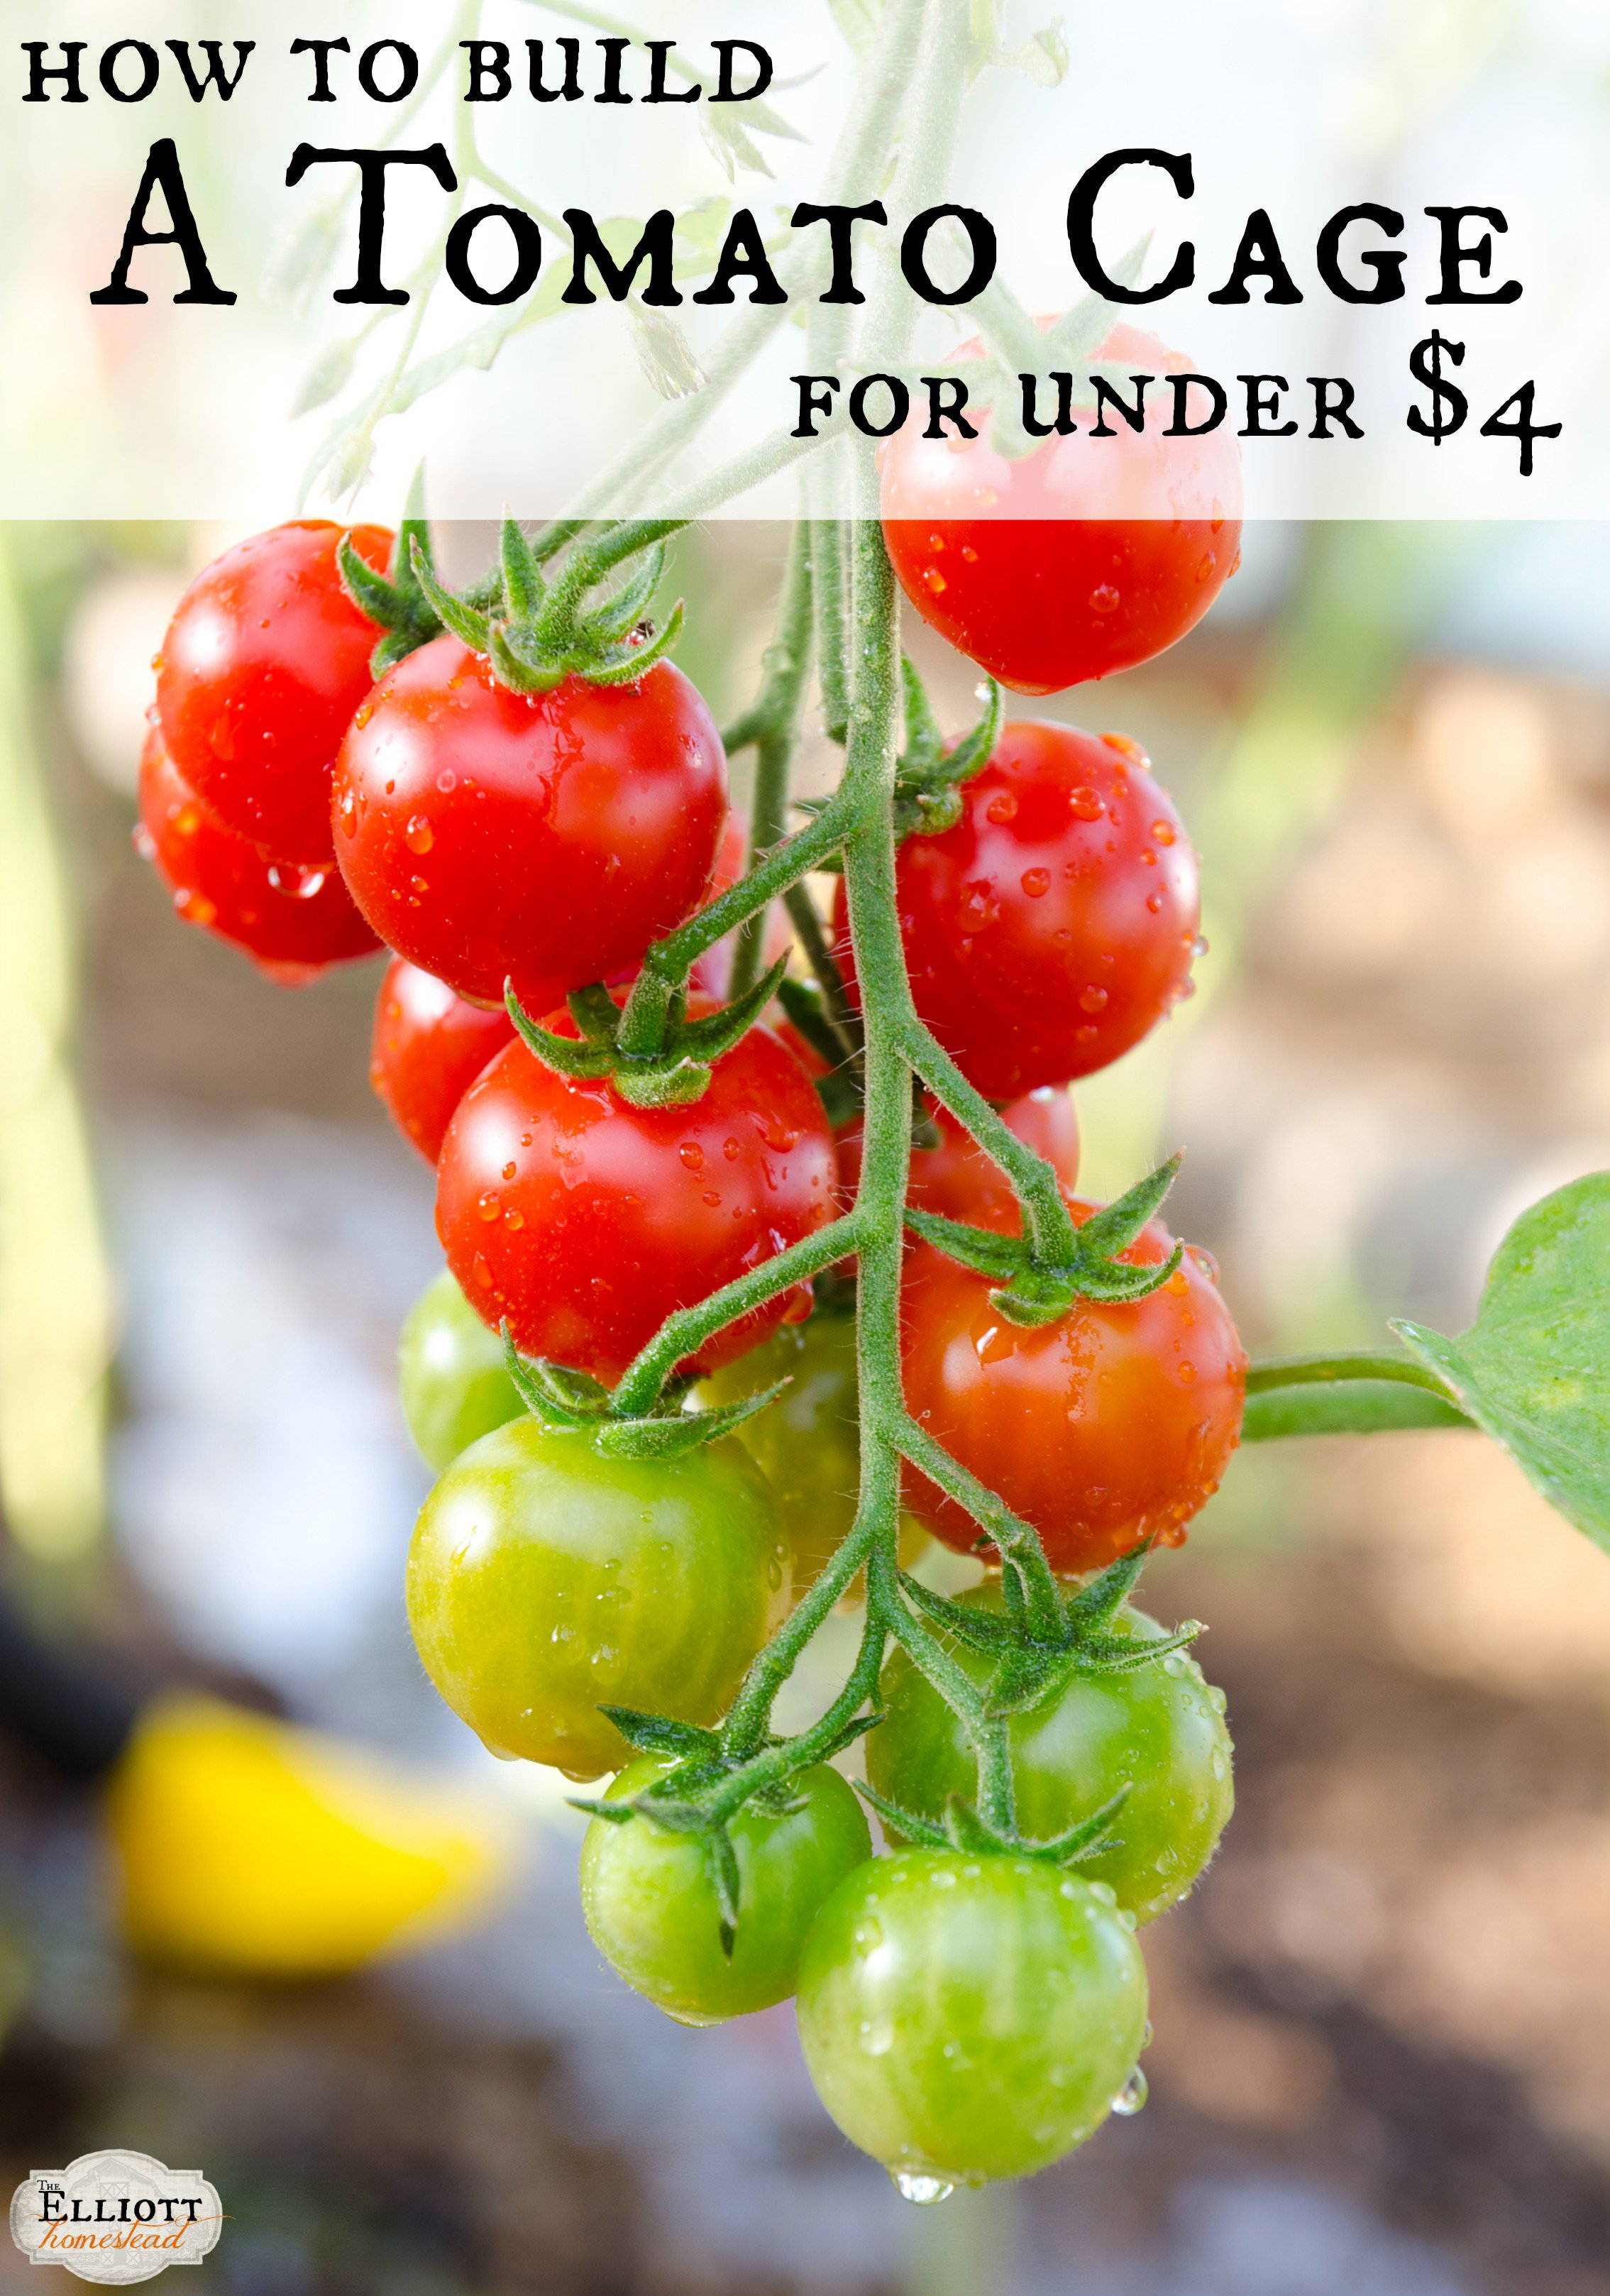 How To Build A Tomato Cage For Under 4 The Elliott